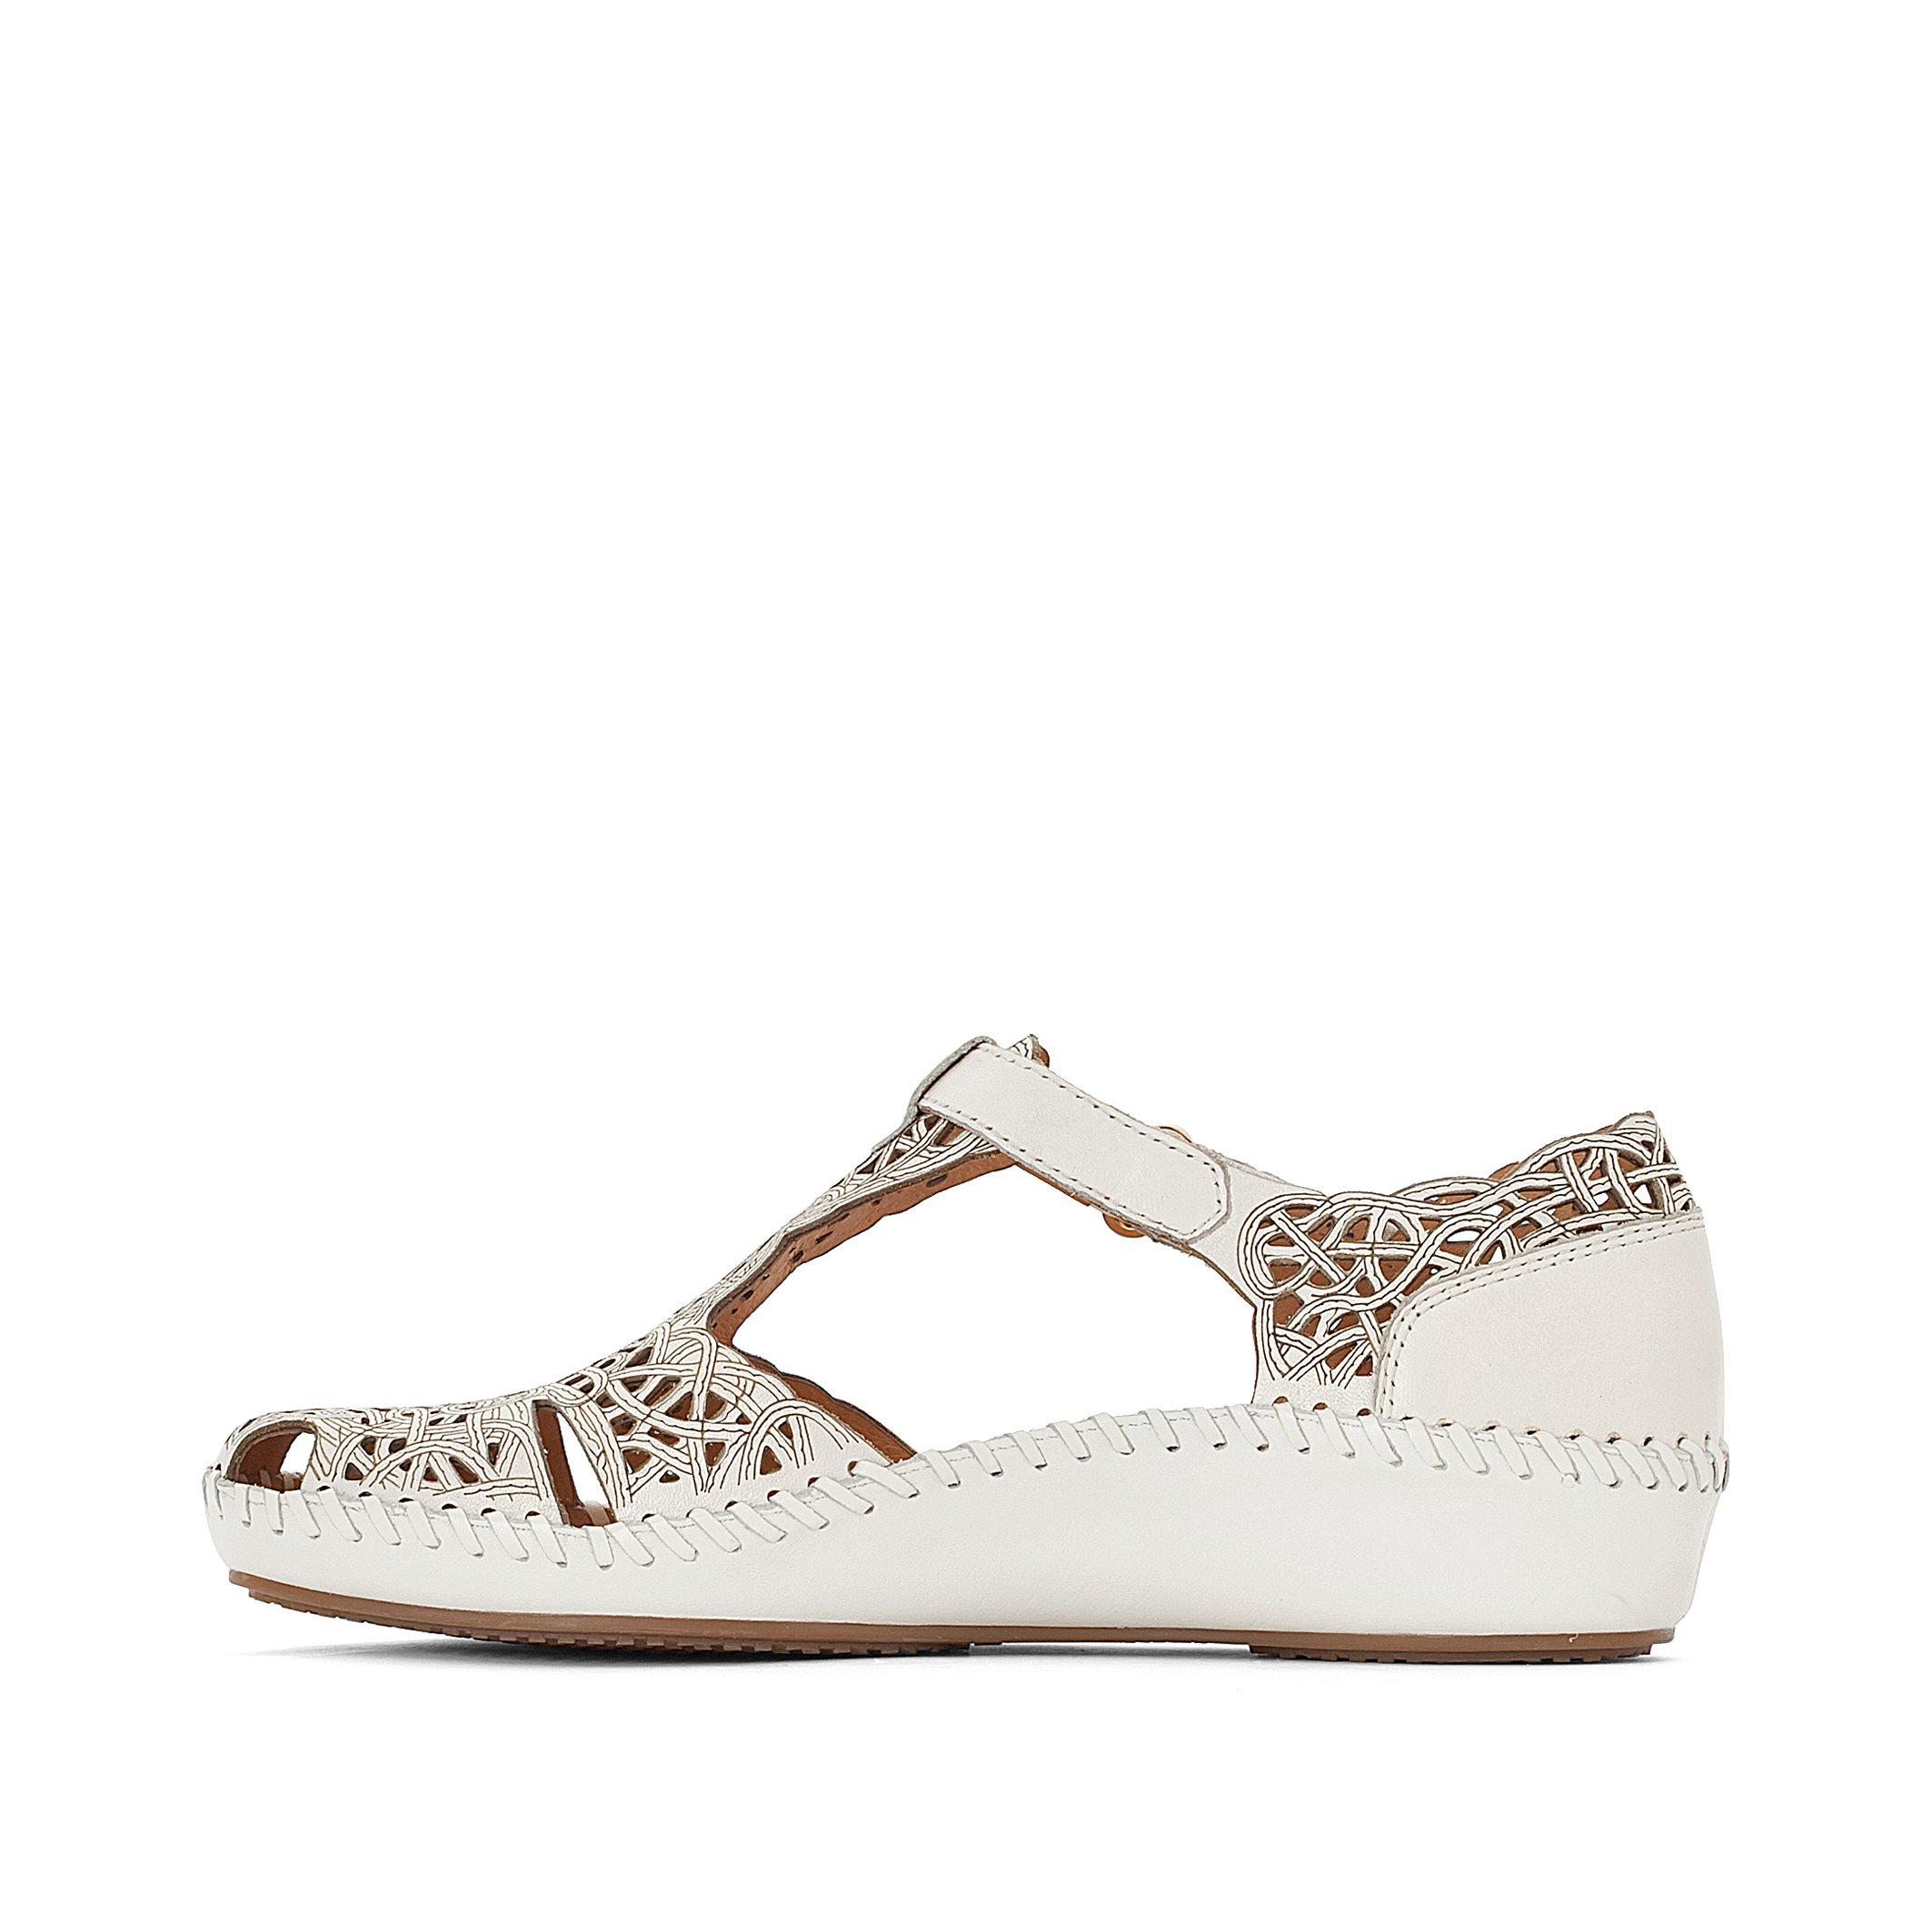 Pikolinos P Vallarta Leather Sandals In White Lyst